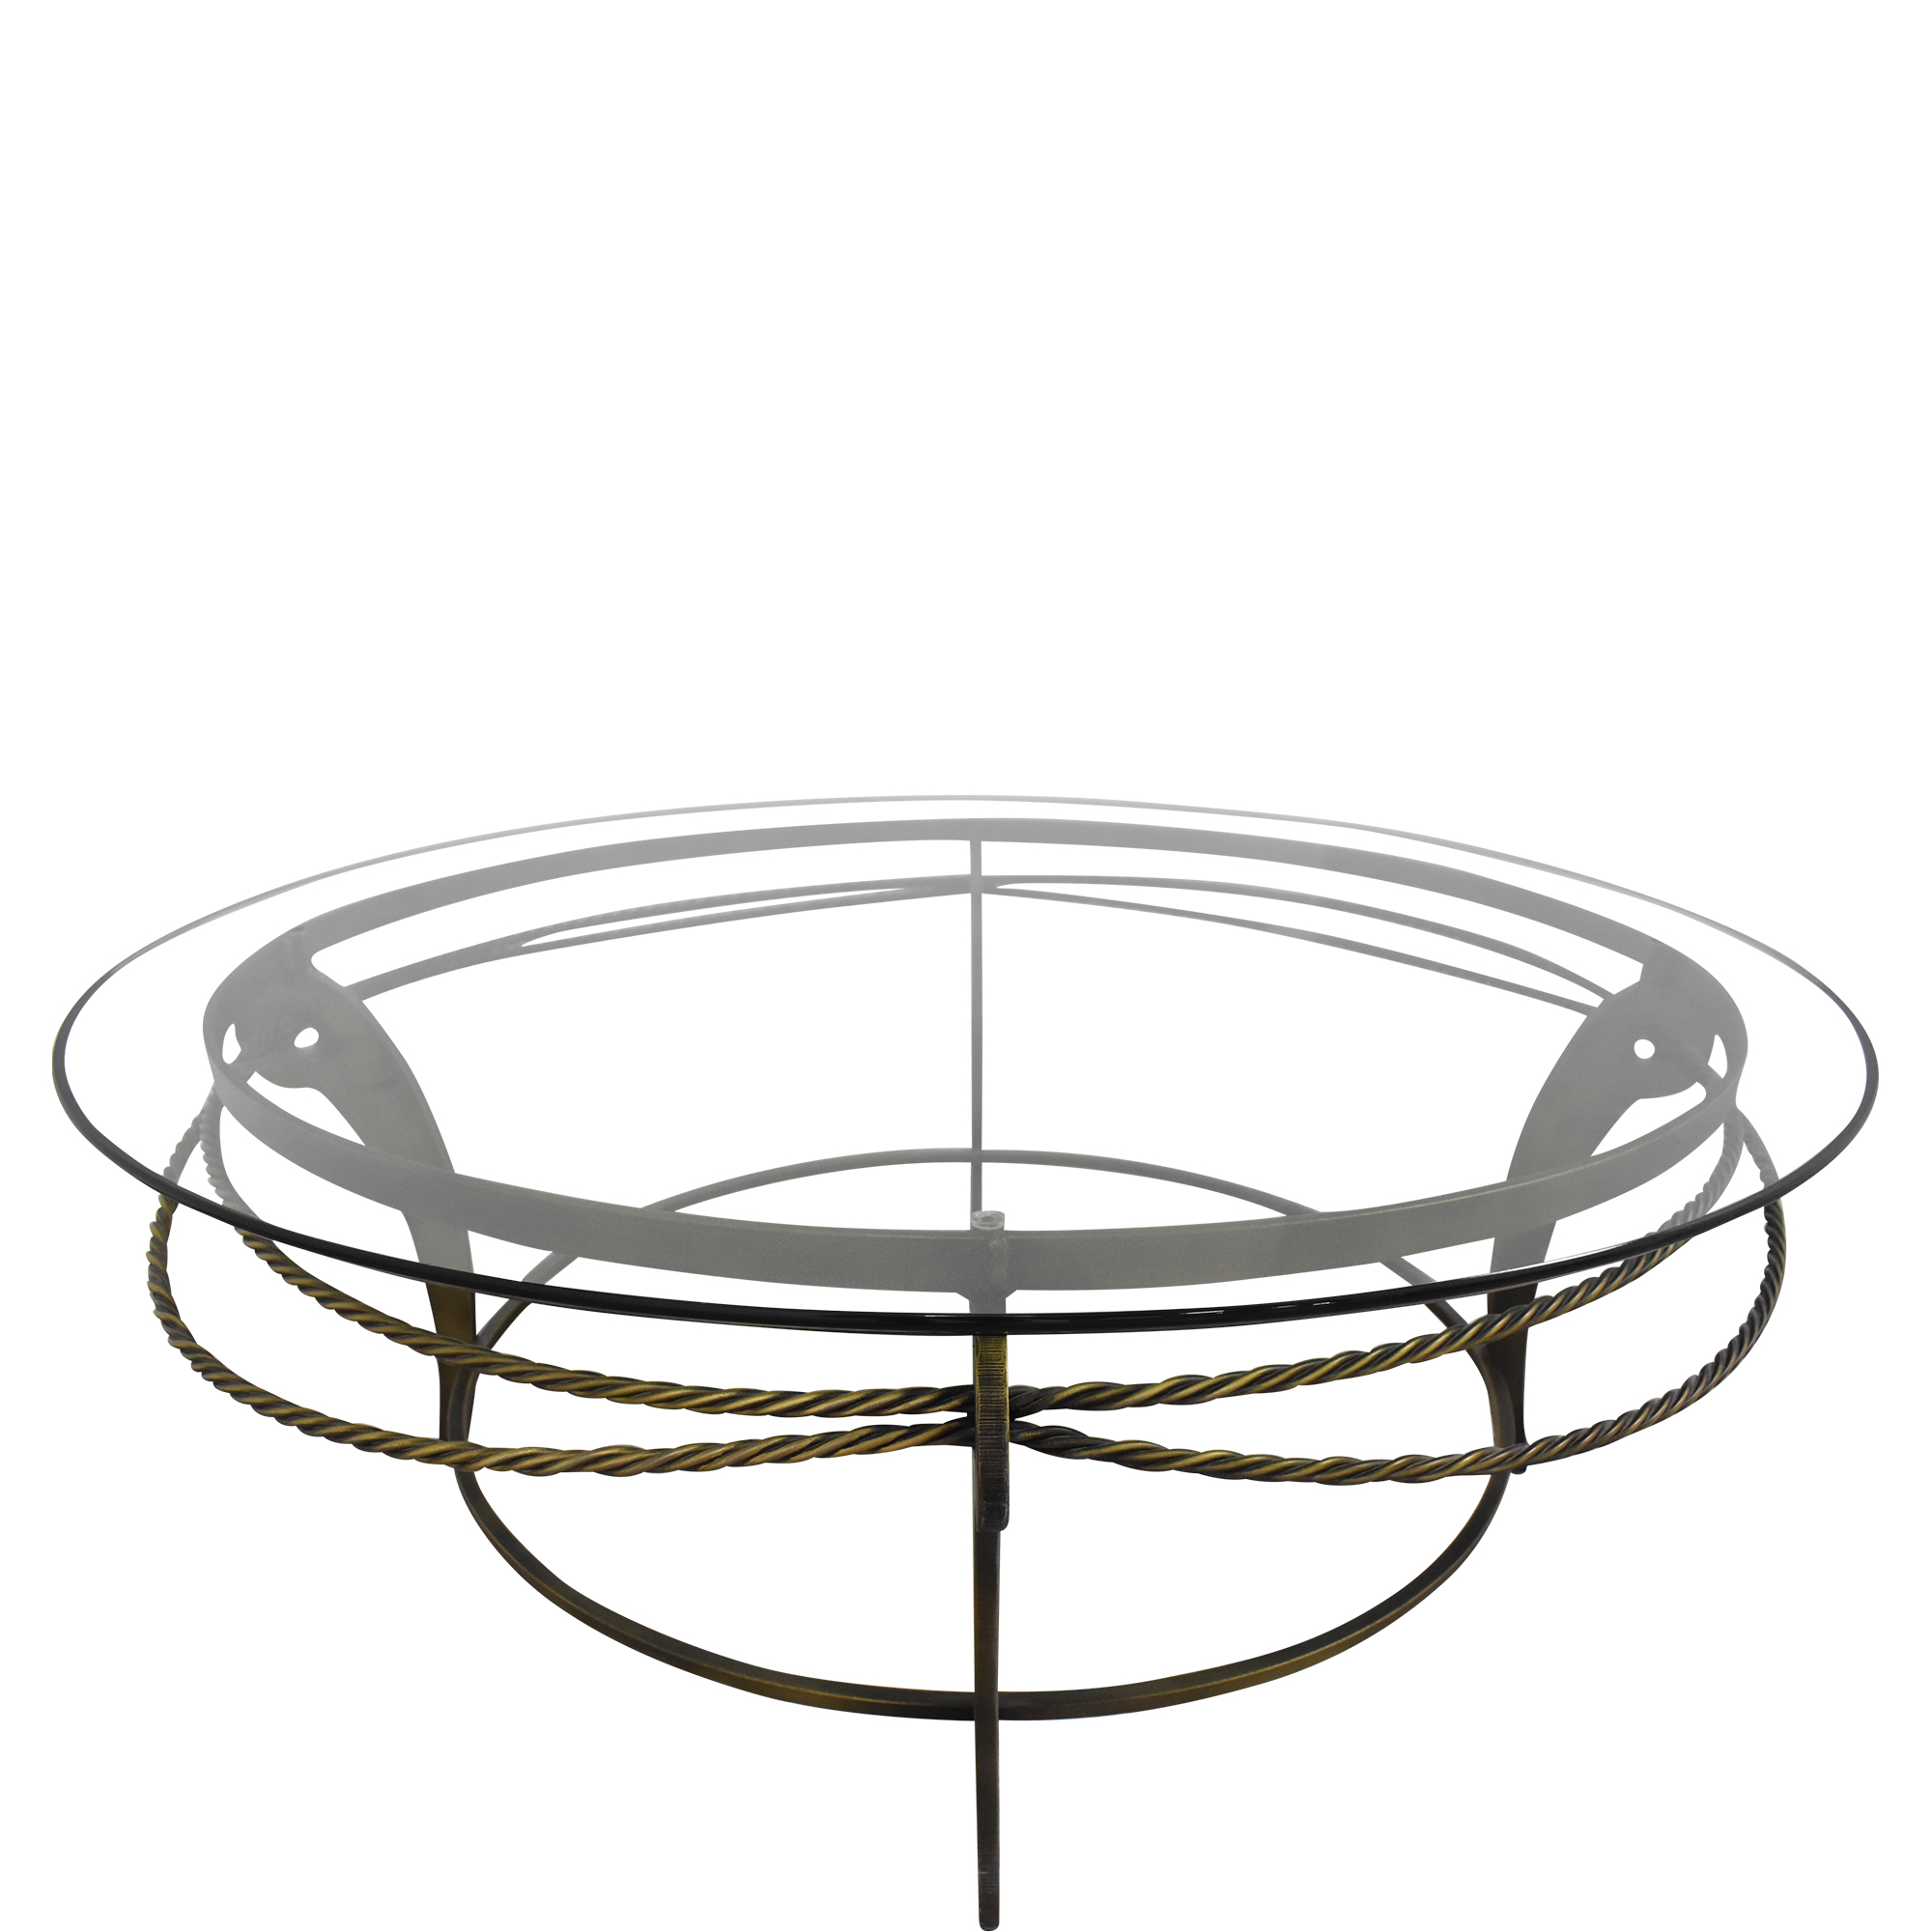 Ethan Allen Round Glass and Metal Coffee Table Ethan Allen